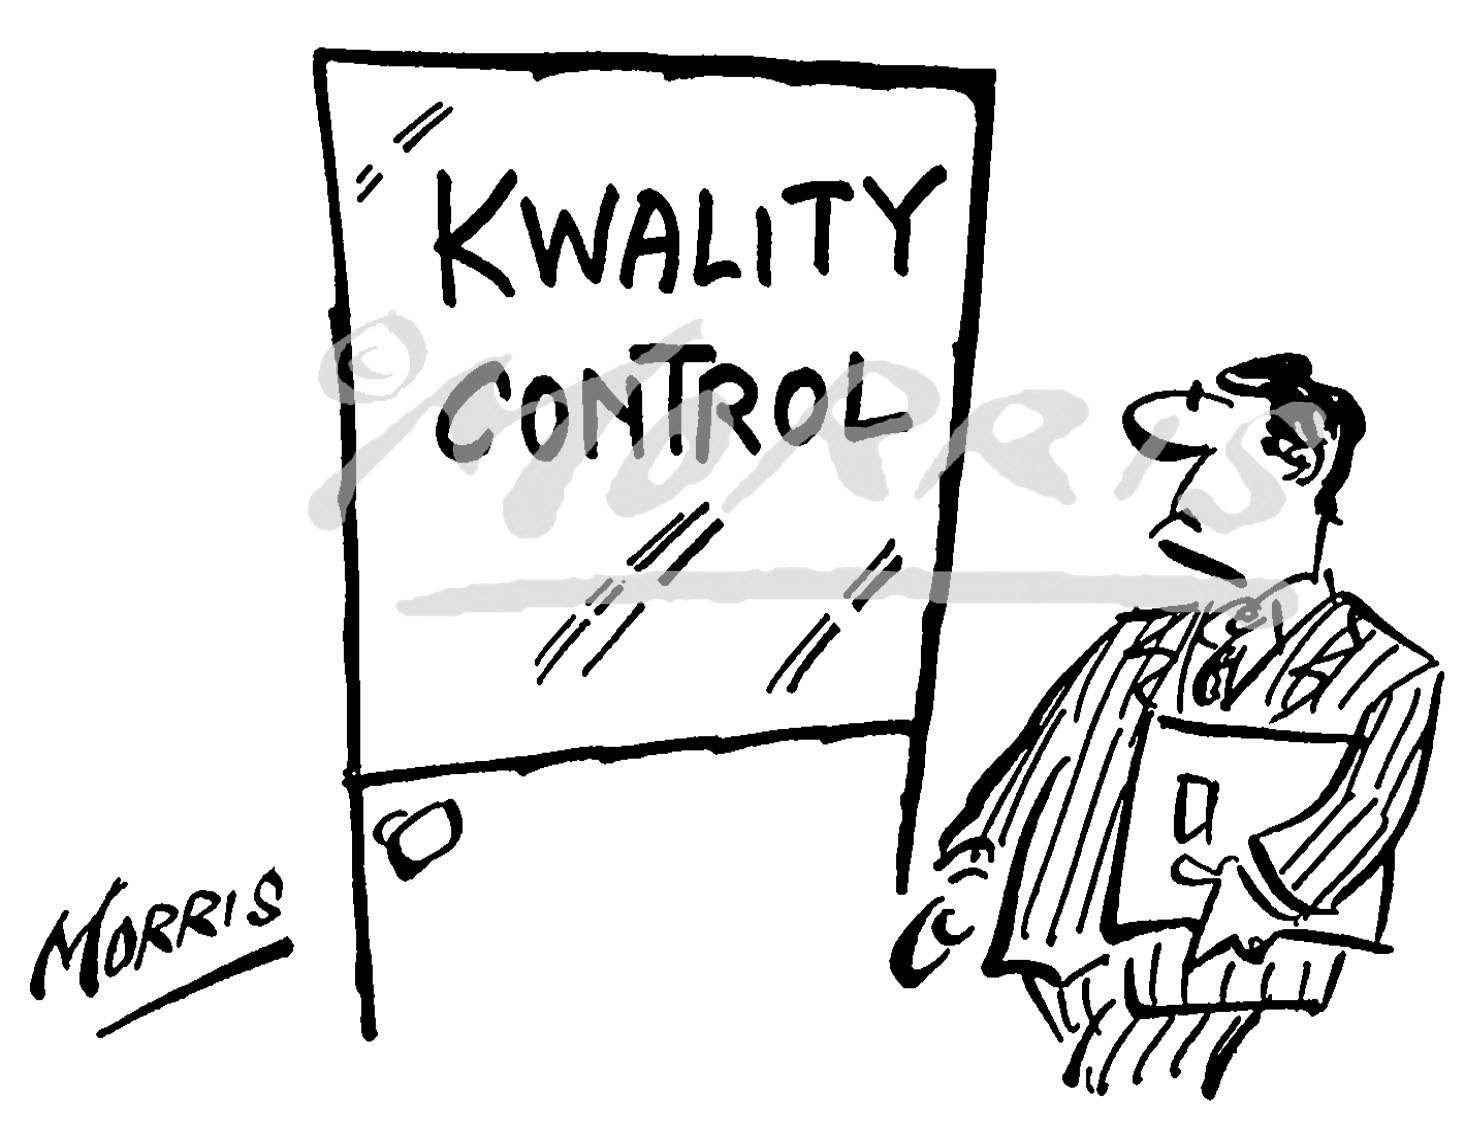 Quality Control comic cartoon Ref: 0592bw